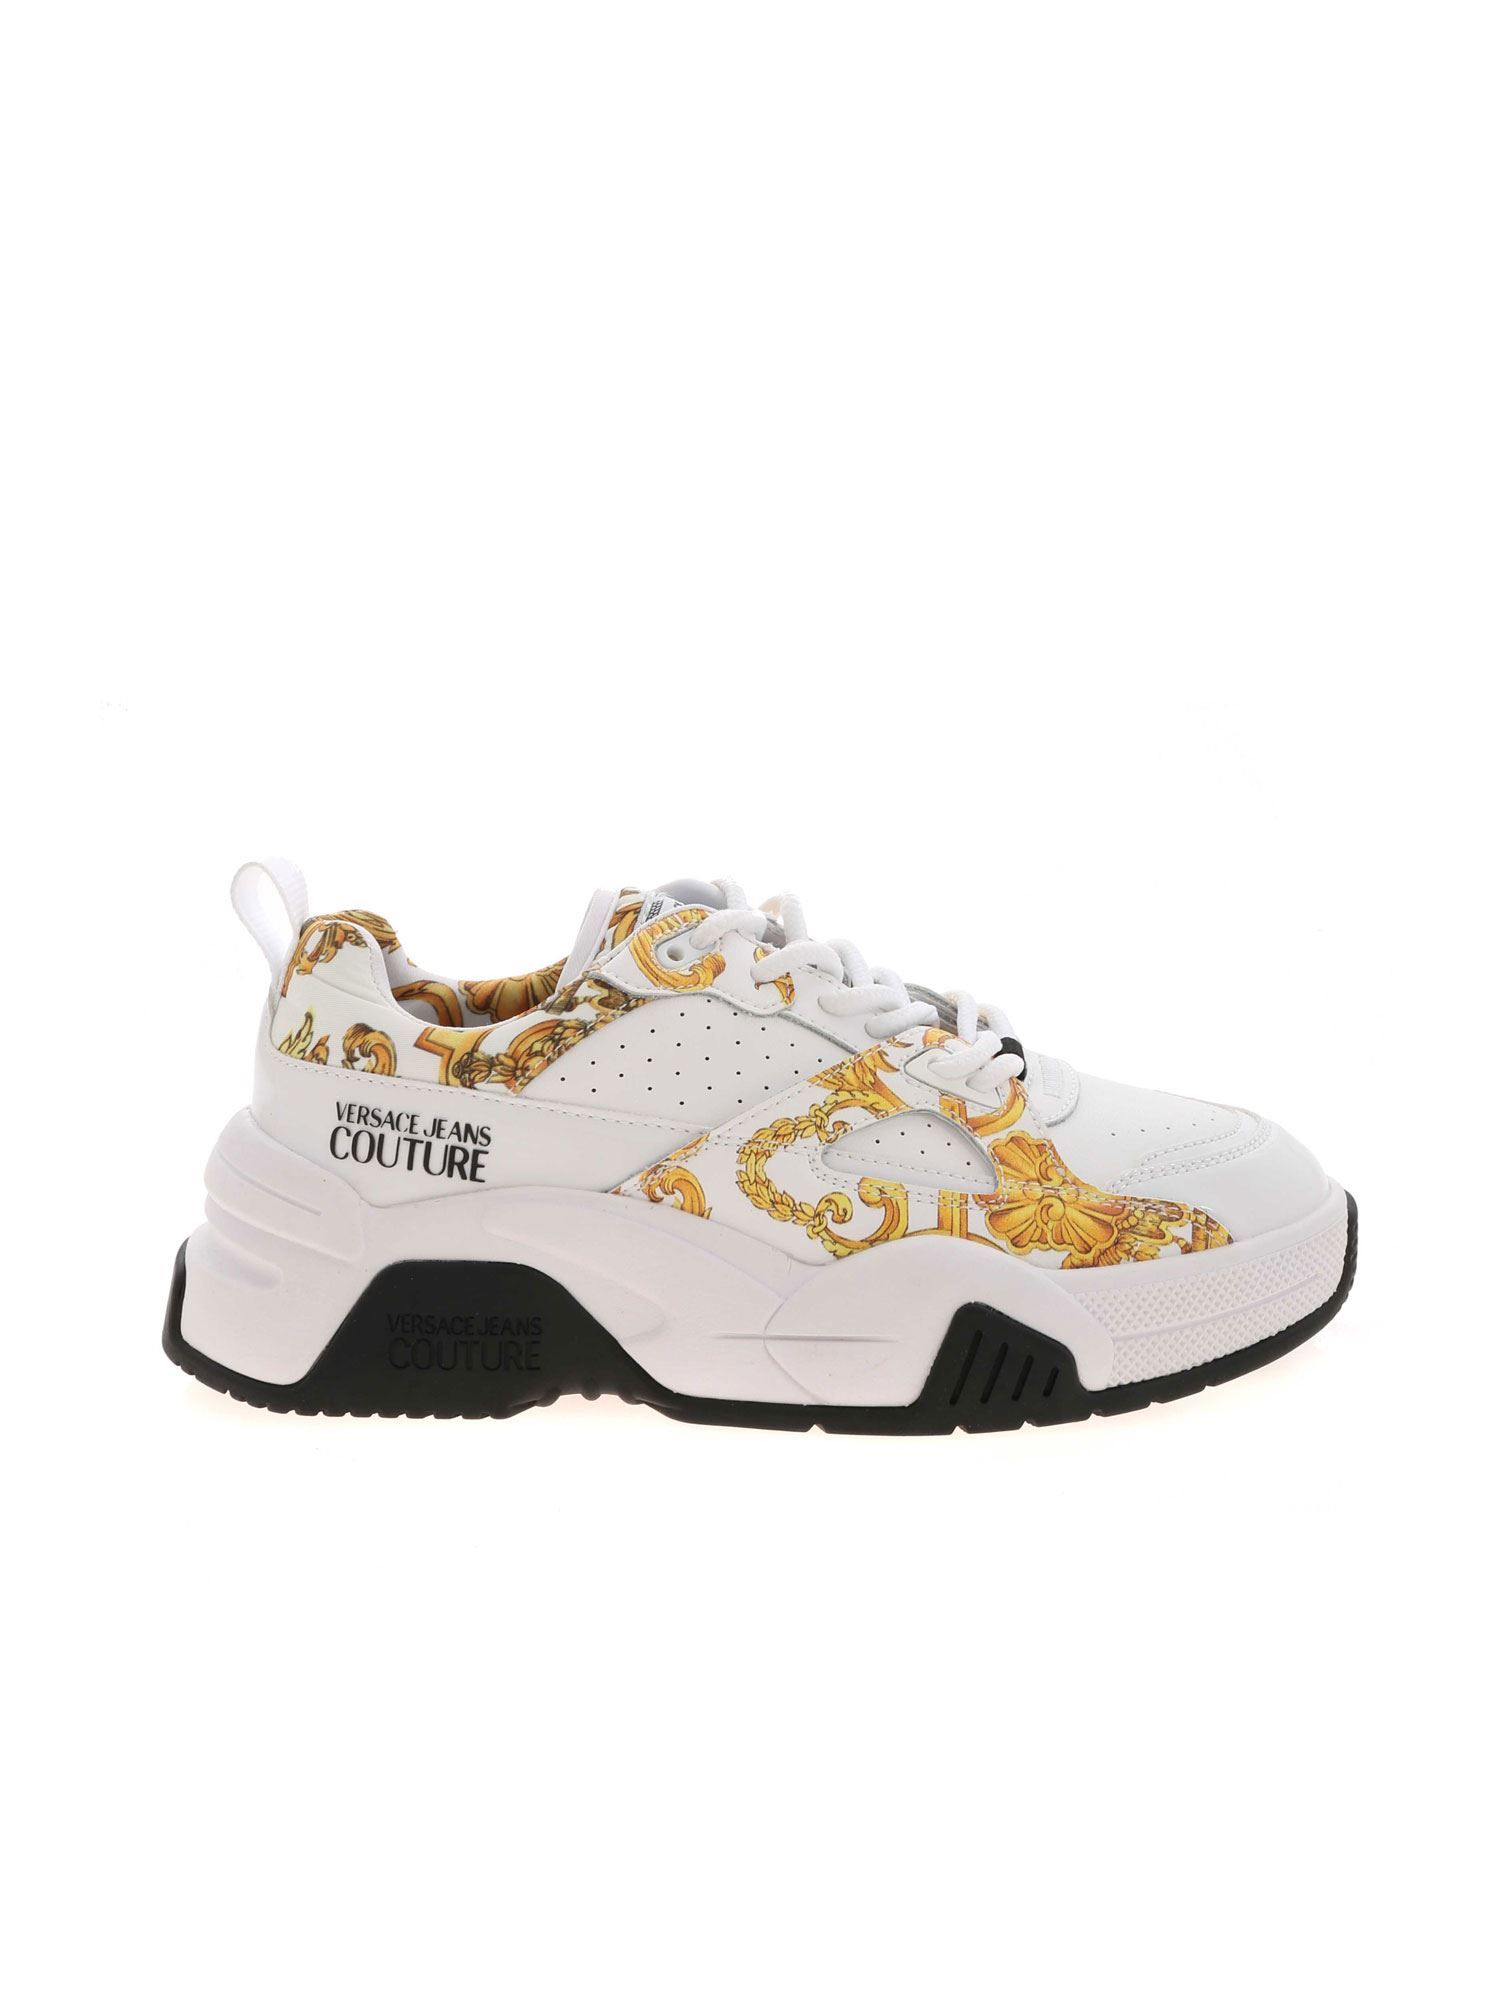 Versace Jeans Couture Leathers VERSACE JEANS WOMEN'S E0VWASF371953MCI WHITE LEATHER SNEAKERS